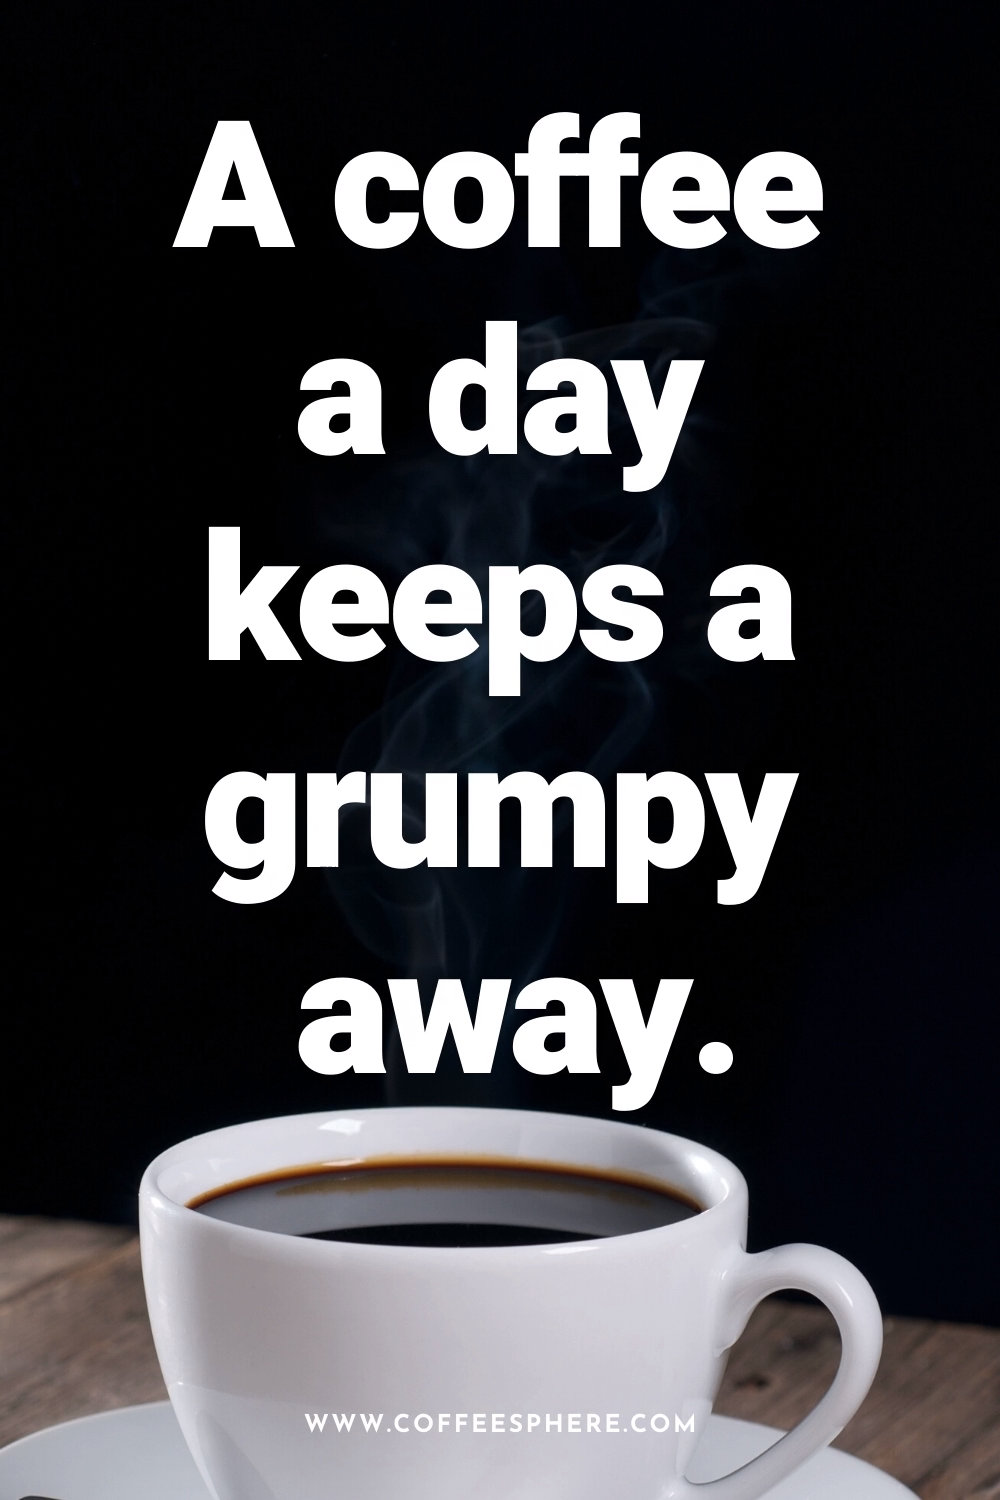 25 Coffee Quotes Funny Coffee Quotes That Will Brighten Your Mood Coffeesphere Video Video Coffee Quotes Funny Coffee Quotes Funny Coffee Quotes